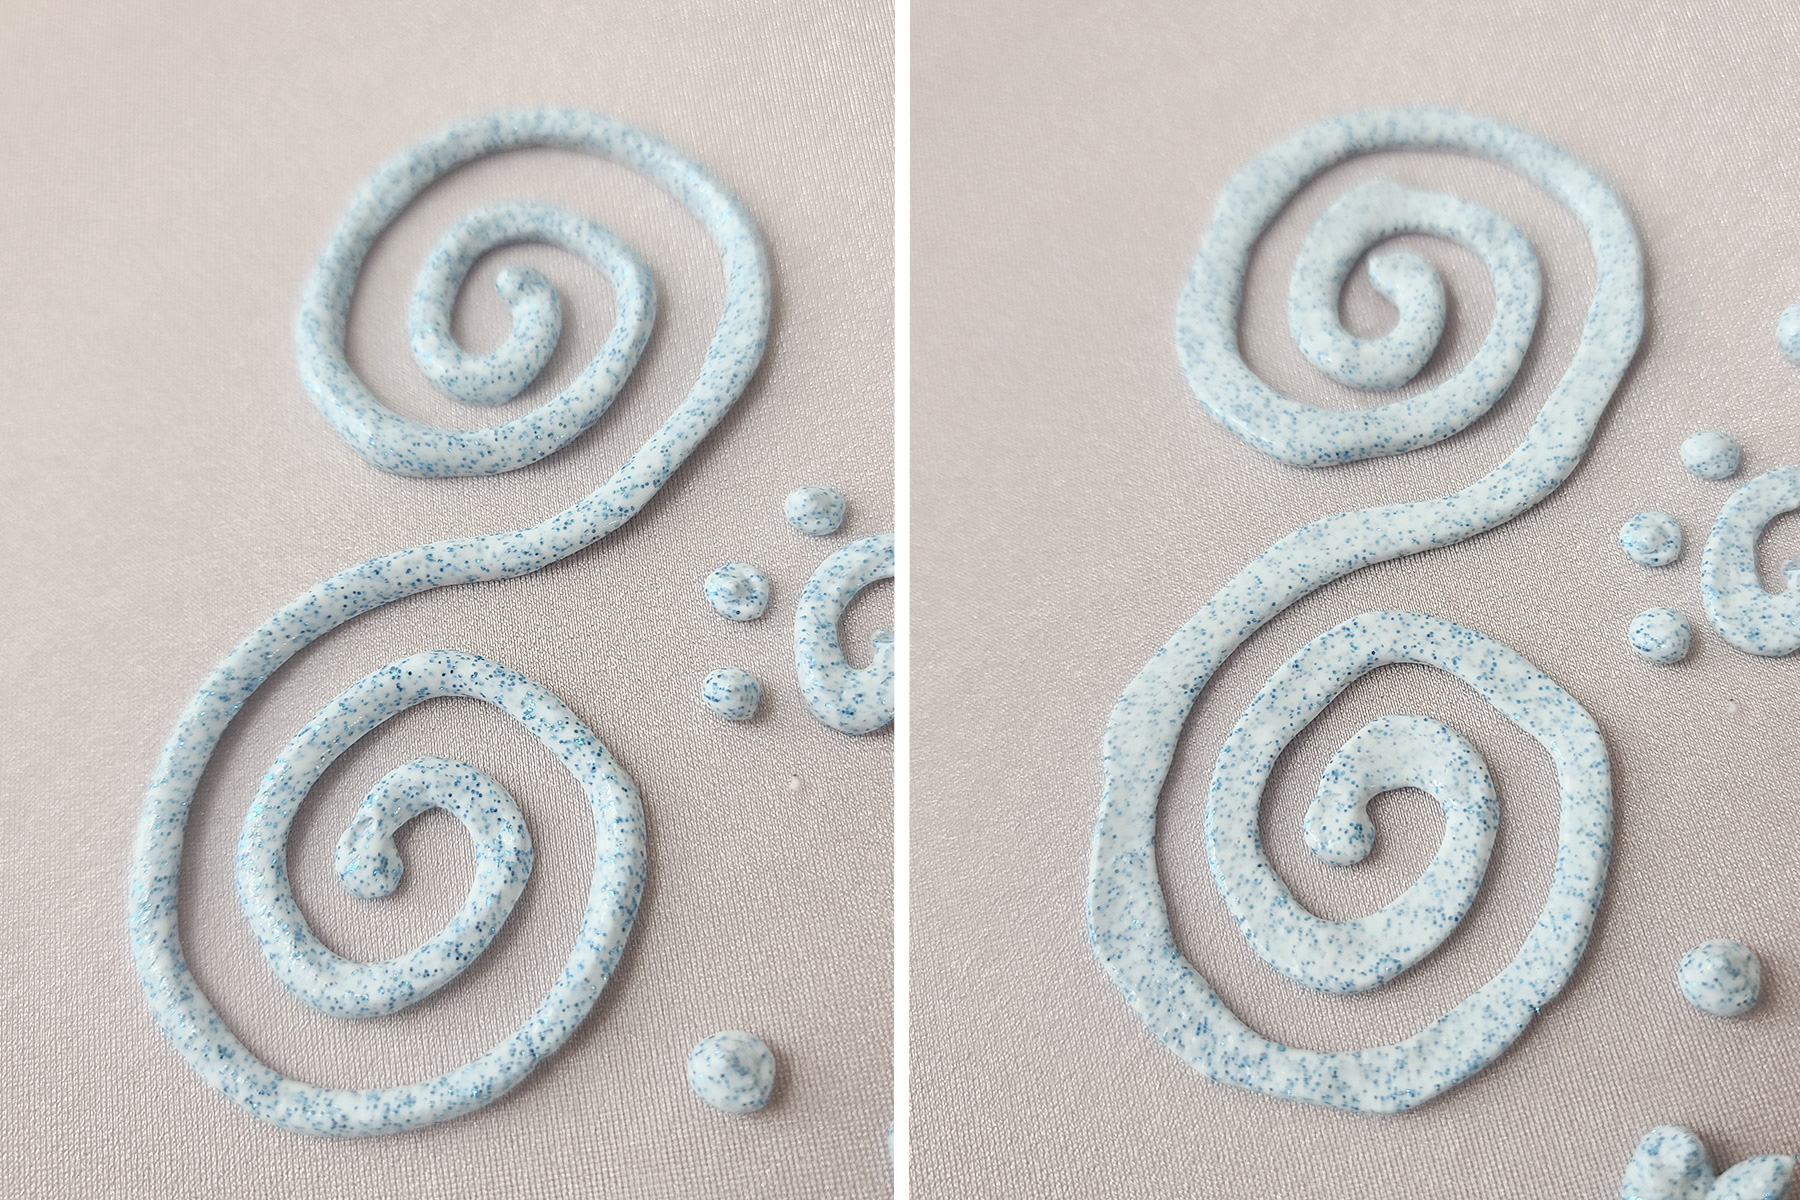 A side by side comparison of a blue stretch glitter paint swirl, before and after being smoothed.